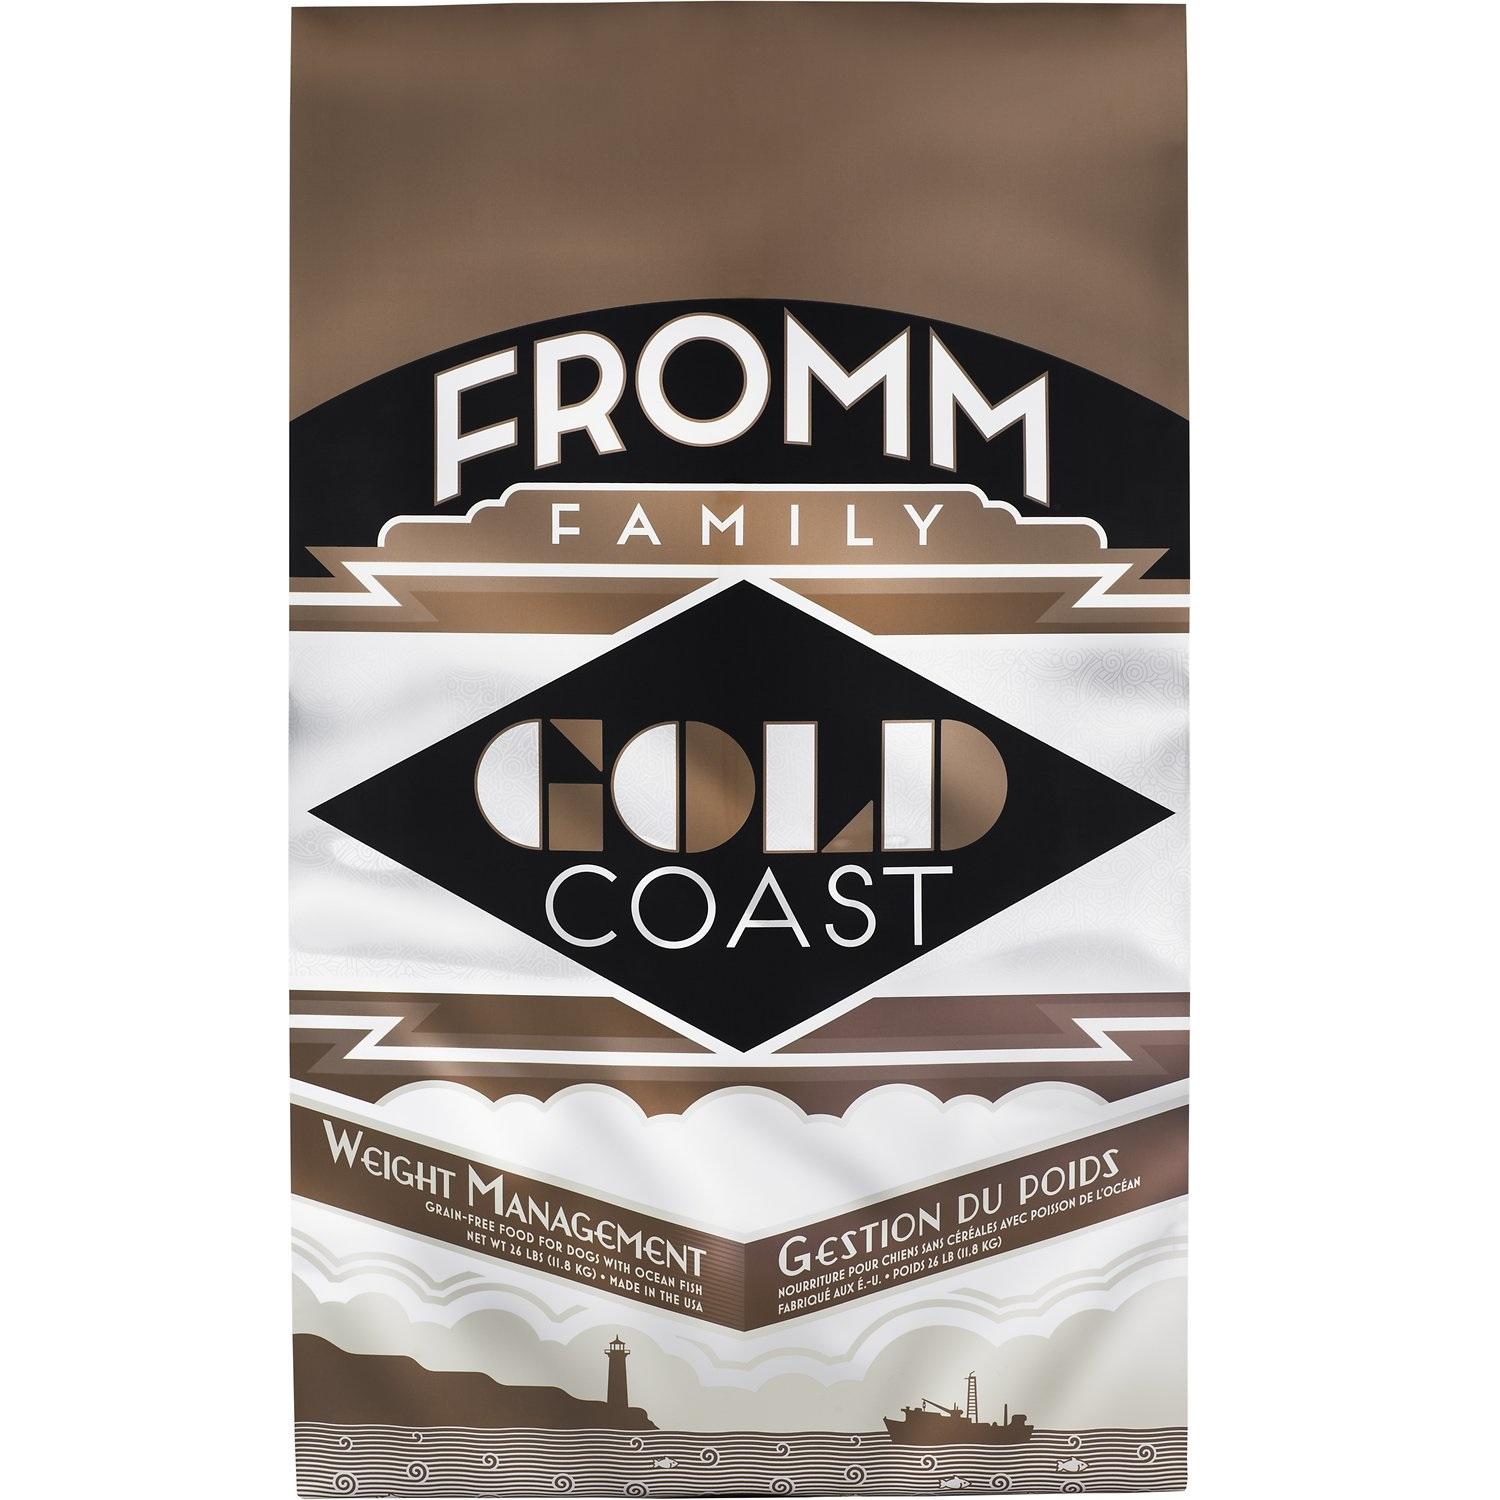 Fromm Gold Coast Grain-Free Weight Management Dry Dog Food 26lbs